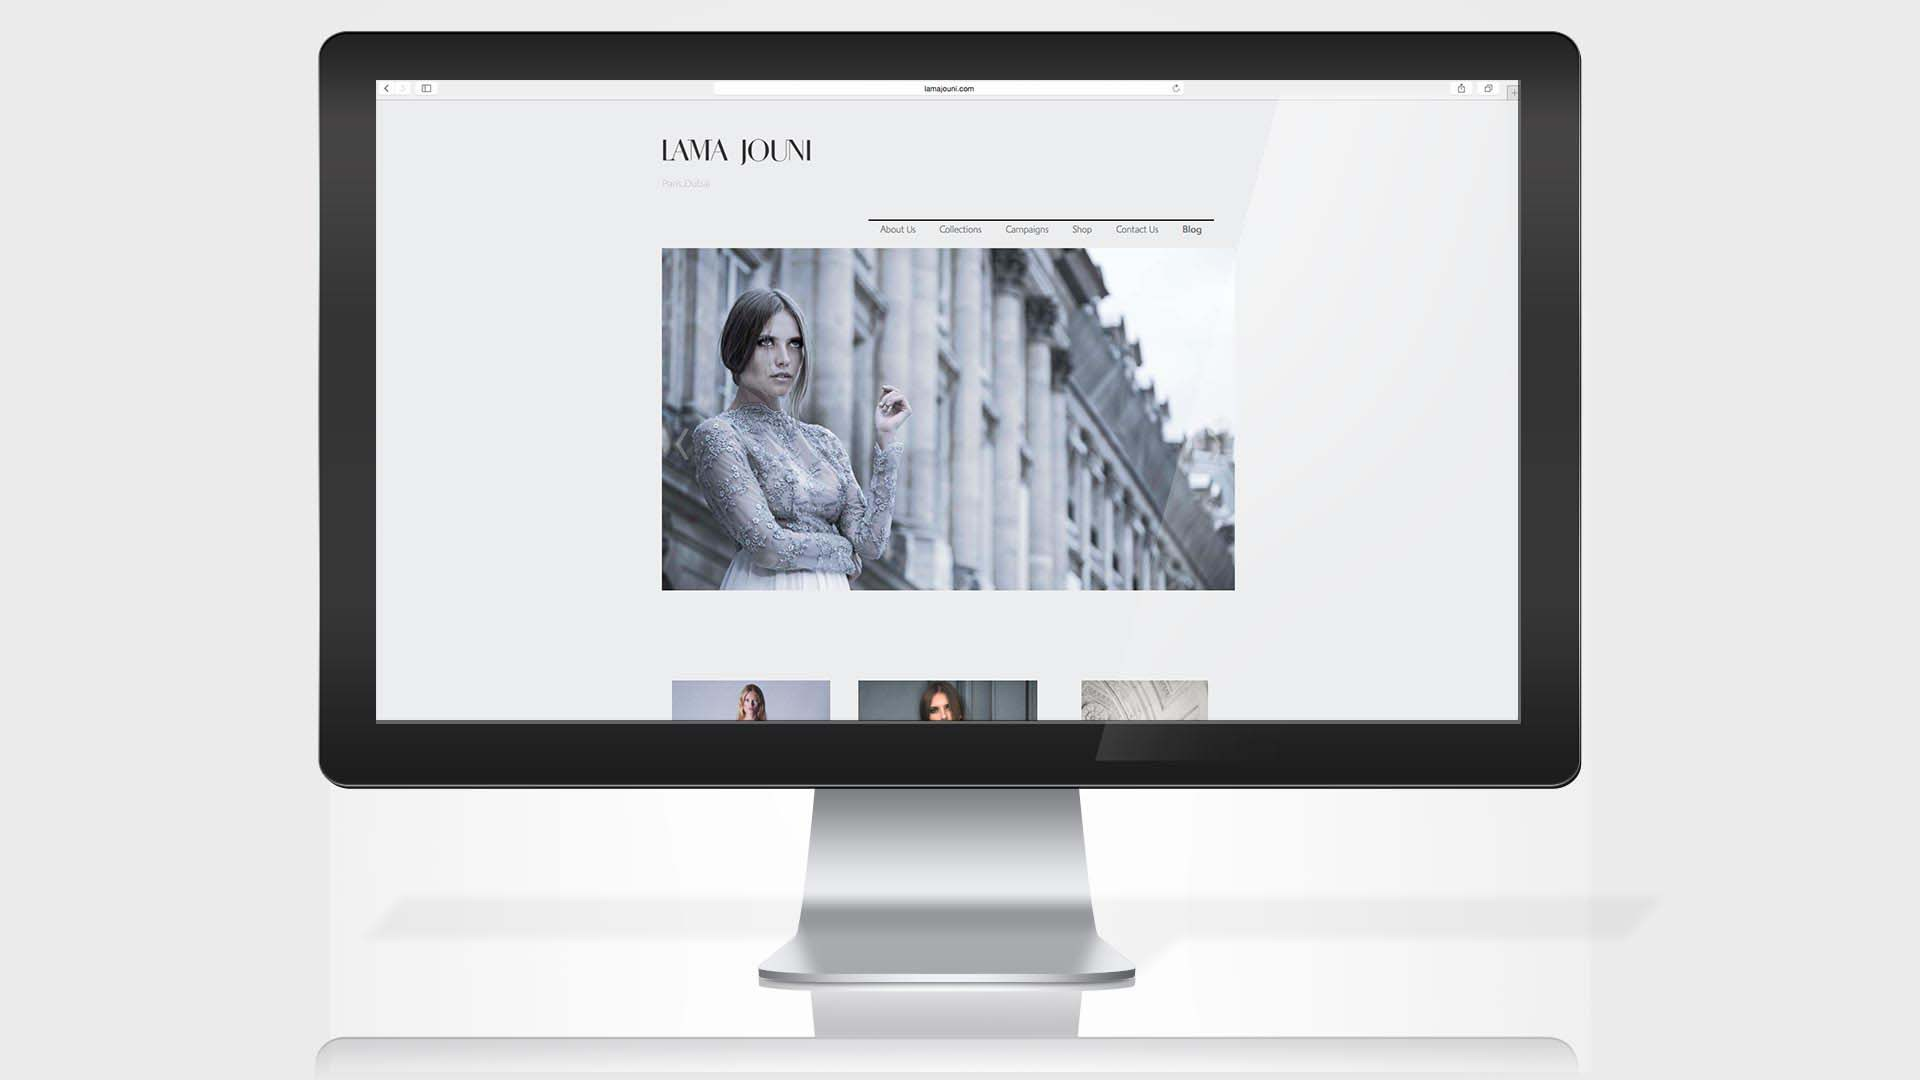 lama-jouni-website-home-page